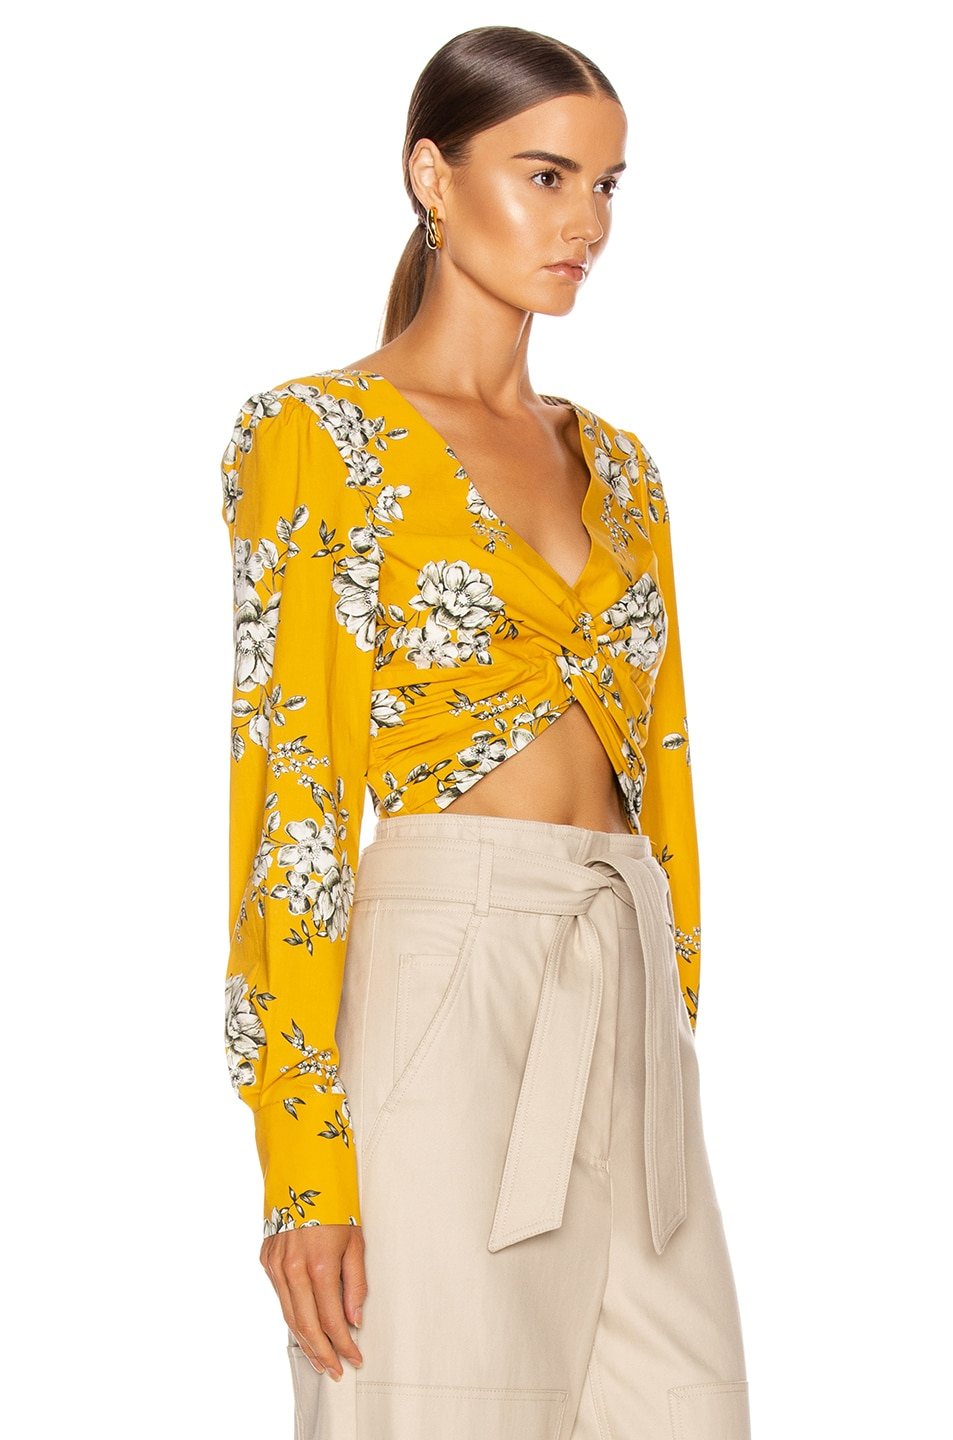 Image 2 of Marissa Webb Karlee Twist Top in Smithton Marigold